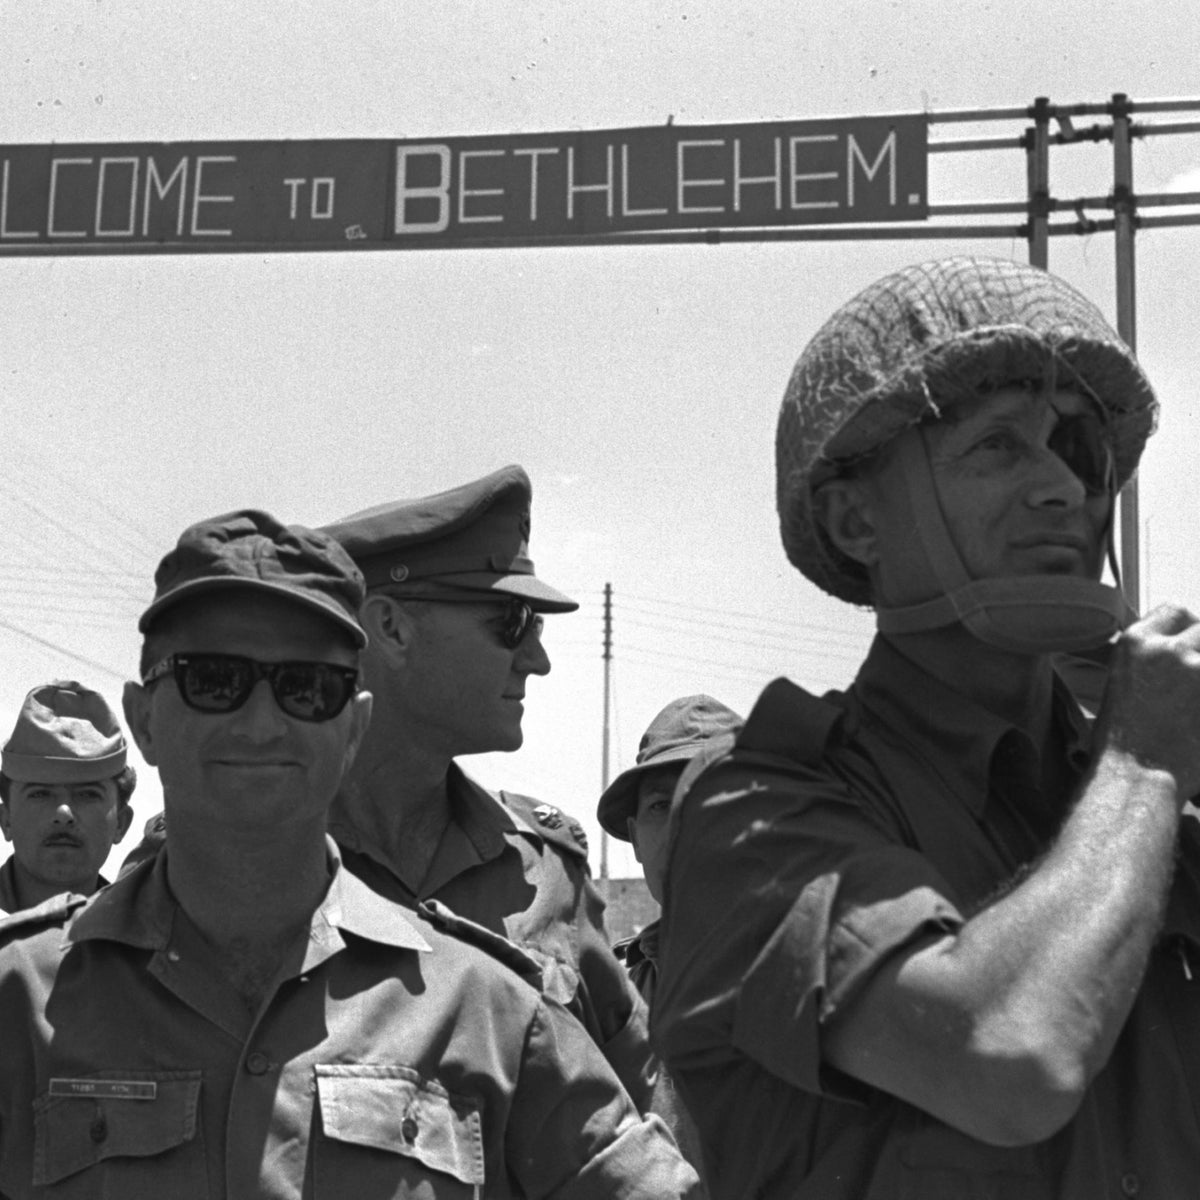 Defense Ministry Moshe Dayan and OC Central Command Uzi Narkis at the entrance to Bethlehem, June 8, 1967.